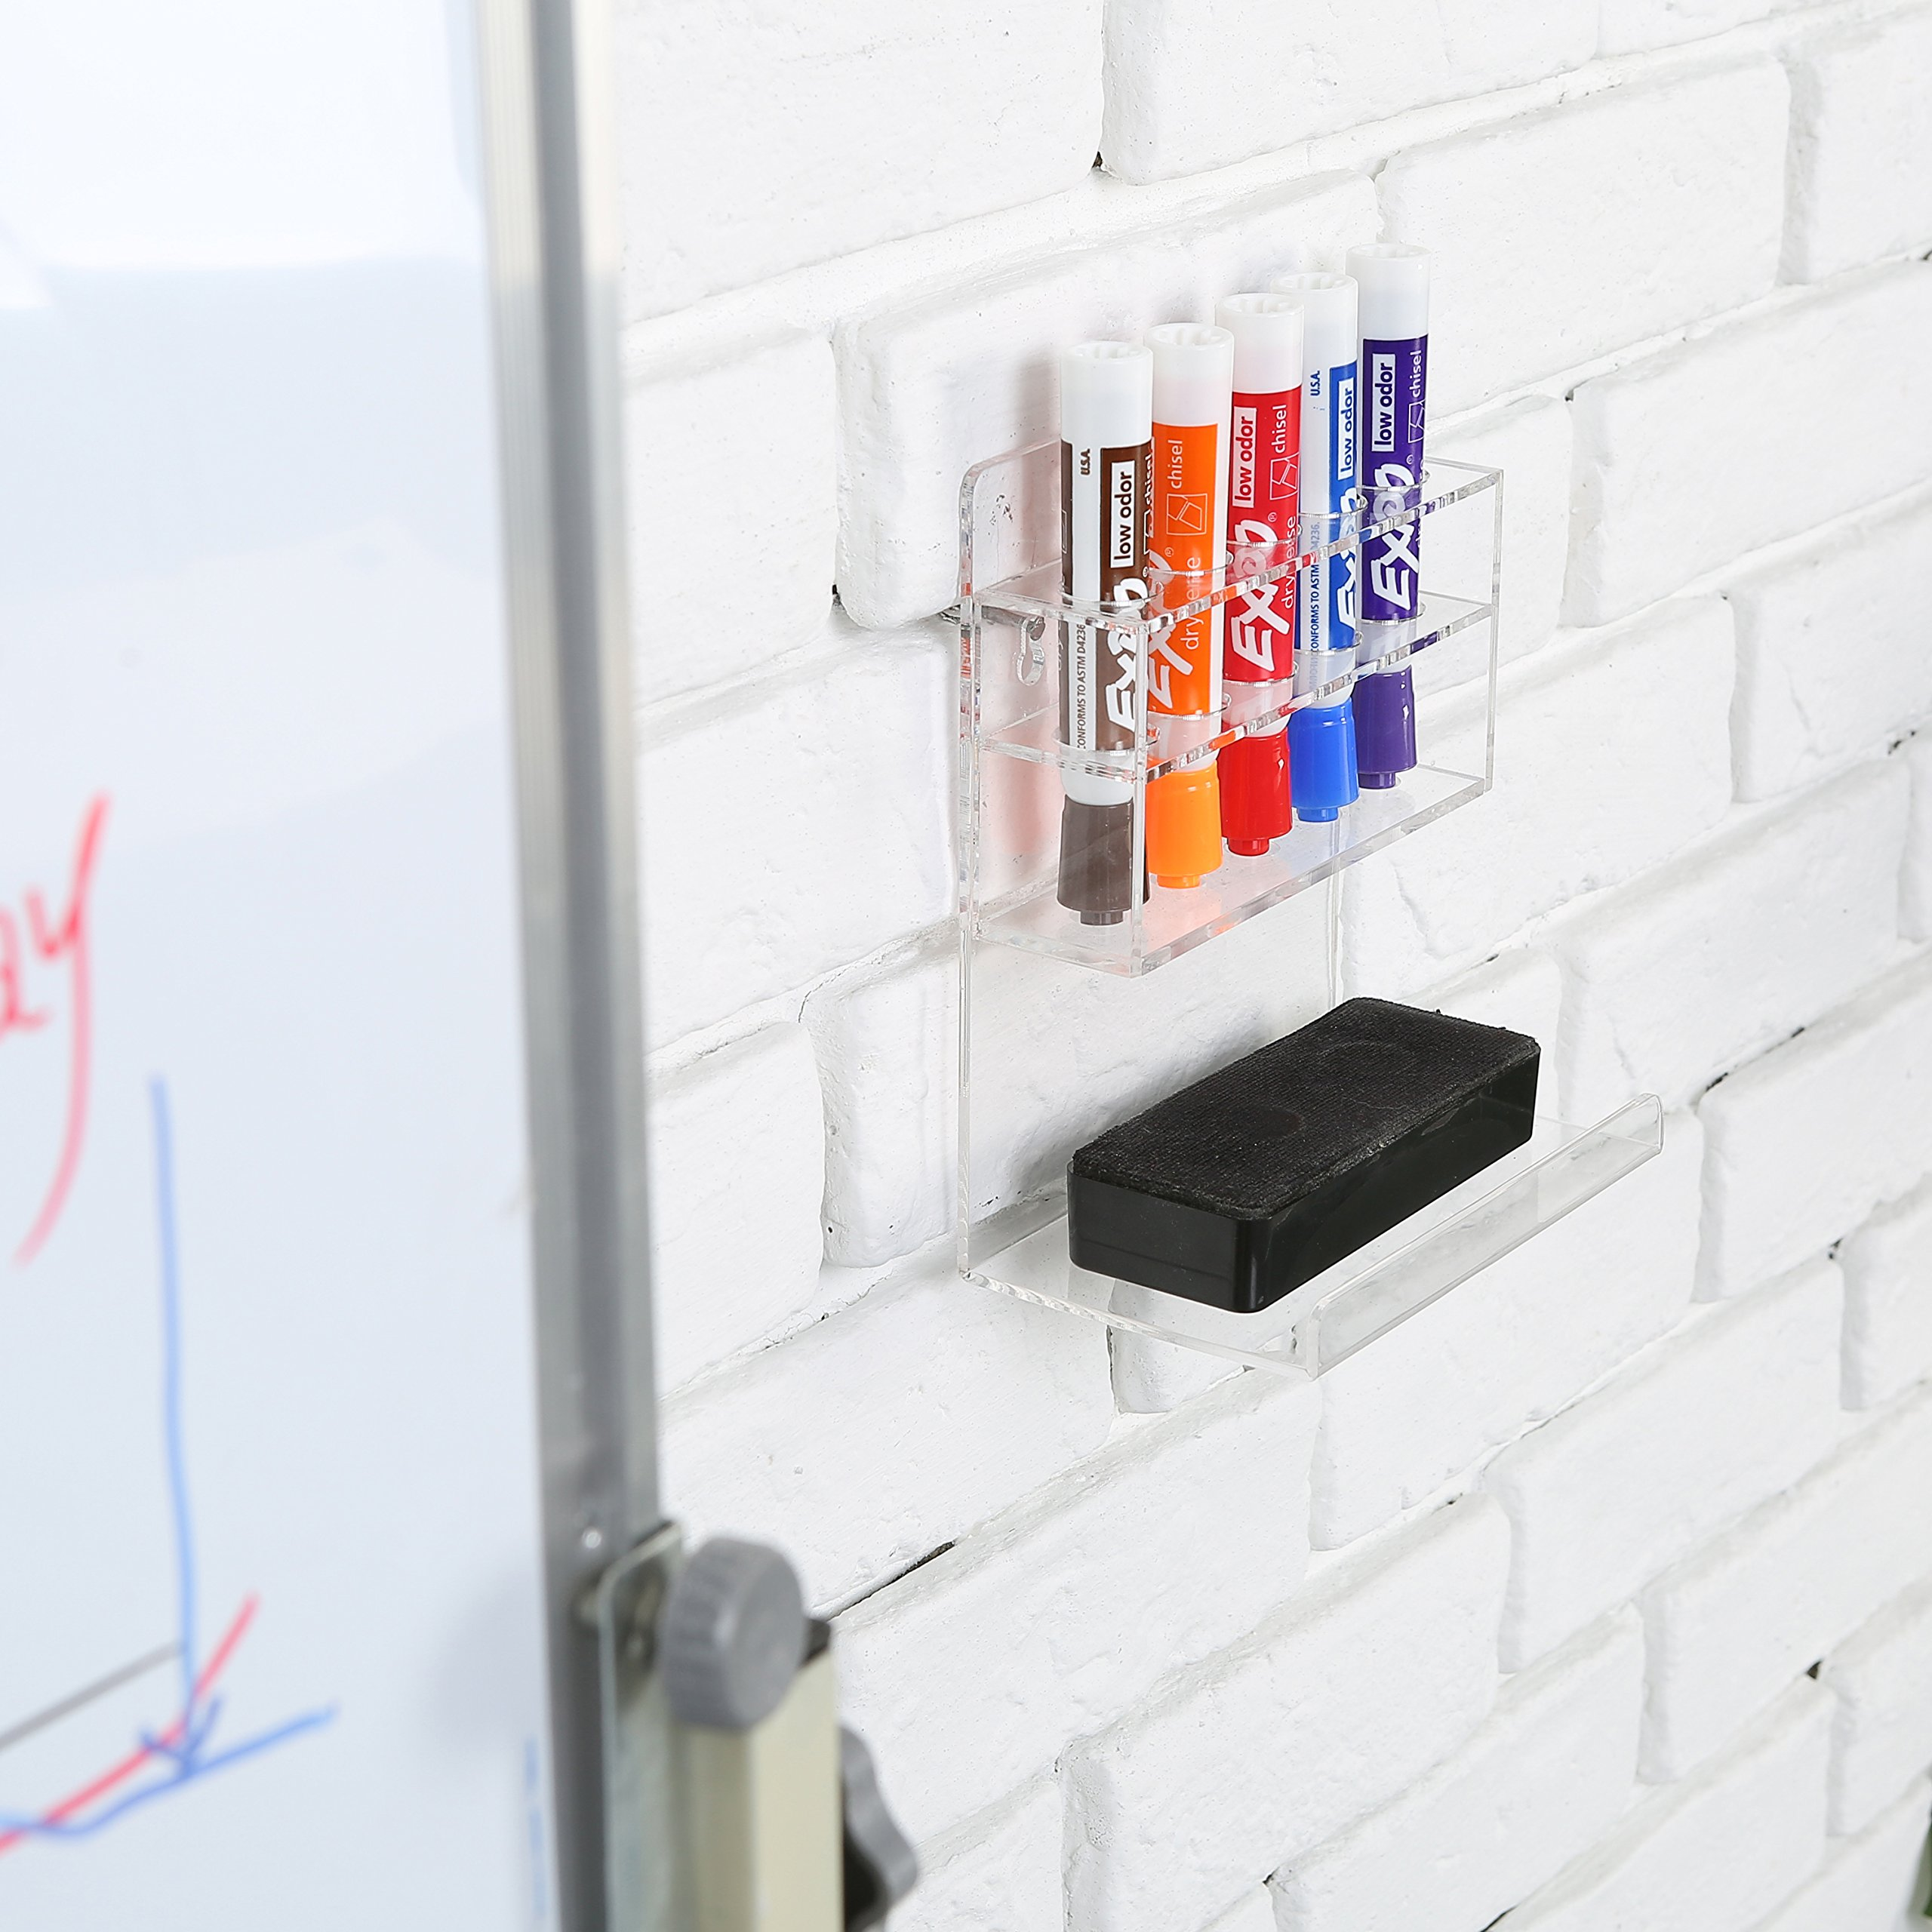 MyGift Clear Acrylic Wall Mounted 5 Slot Dry Erase Marker and Eraser Organizer Holder Rack, Set of 2 by MyGift (Image #2)